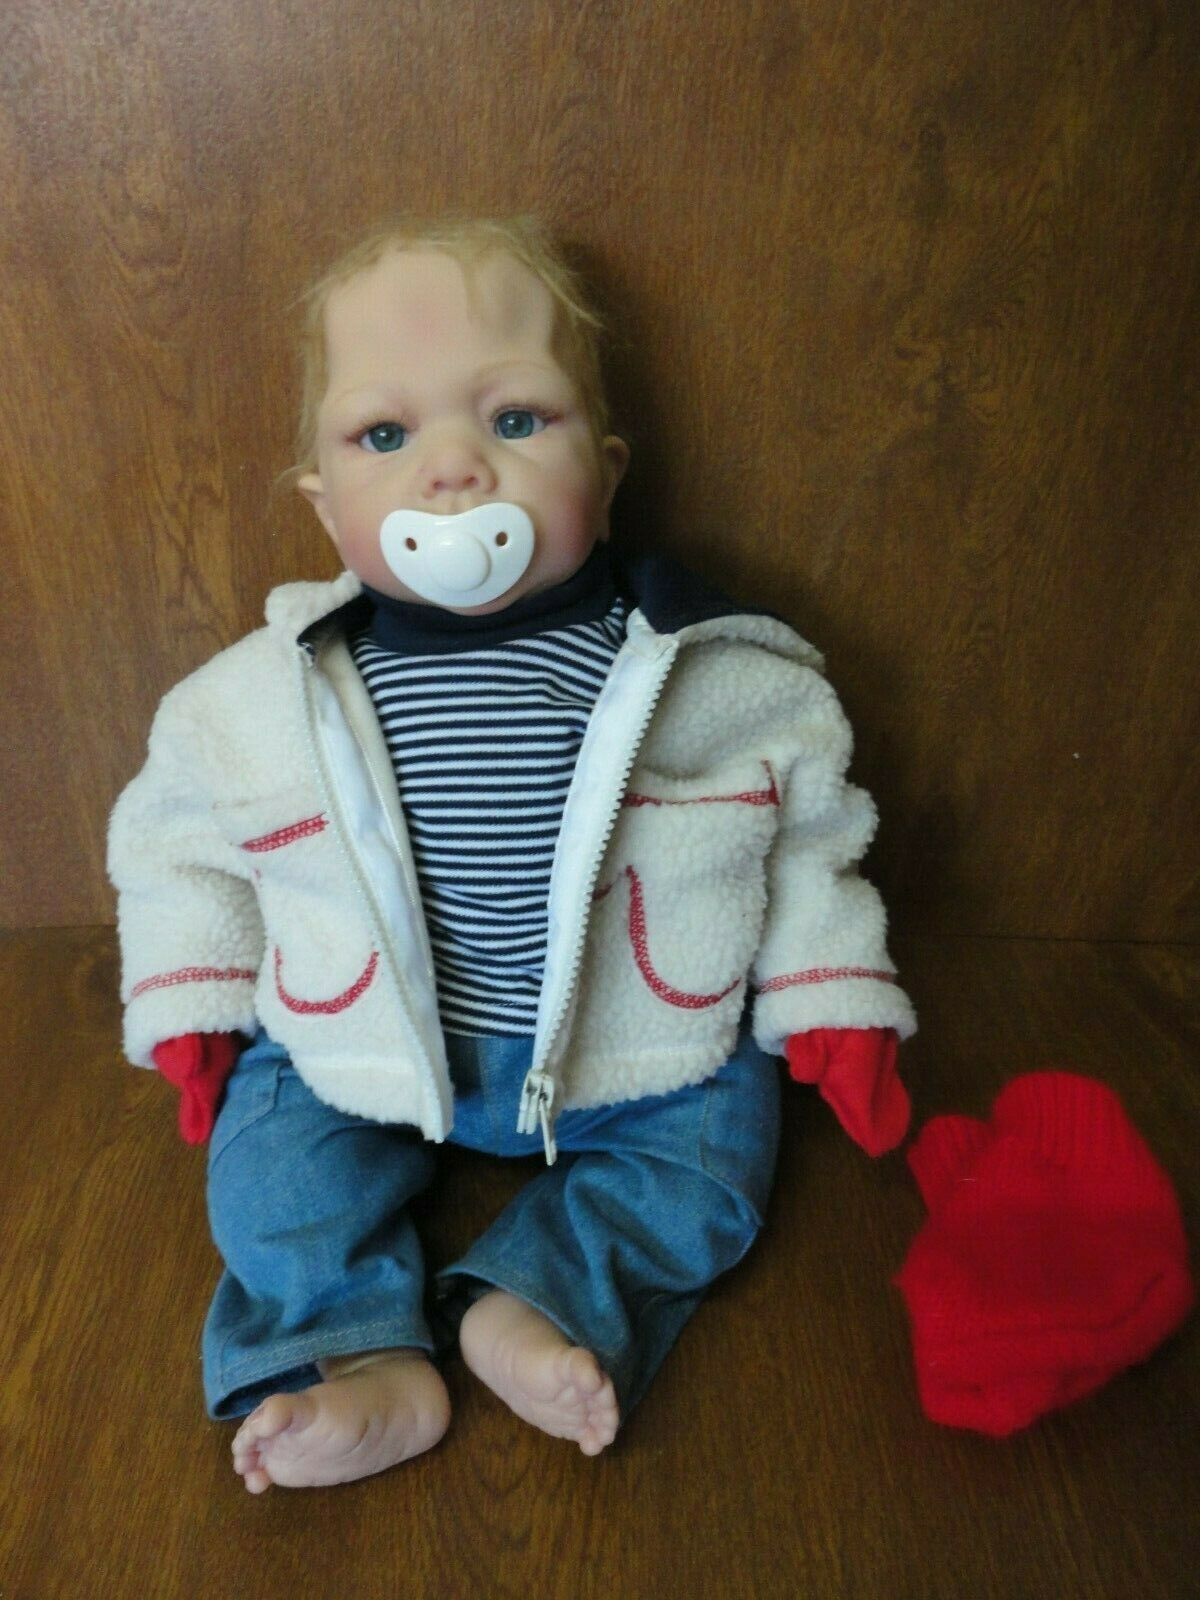 Rare 19  Maribel Villanova Reborn Baby Boy Doll ADG 04 - So Truly Real